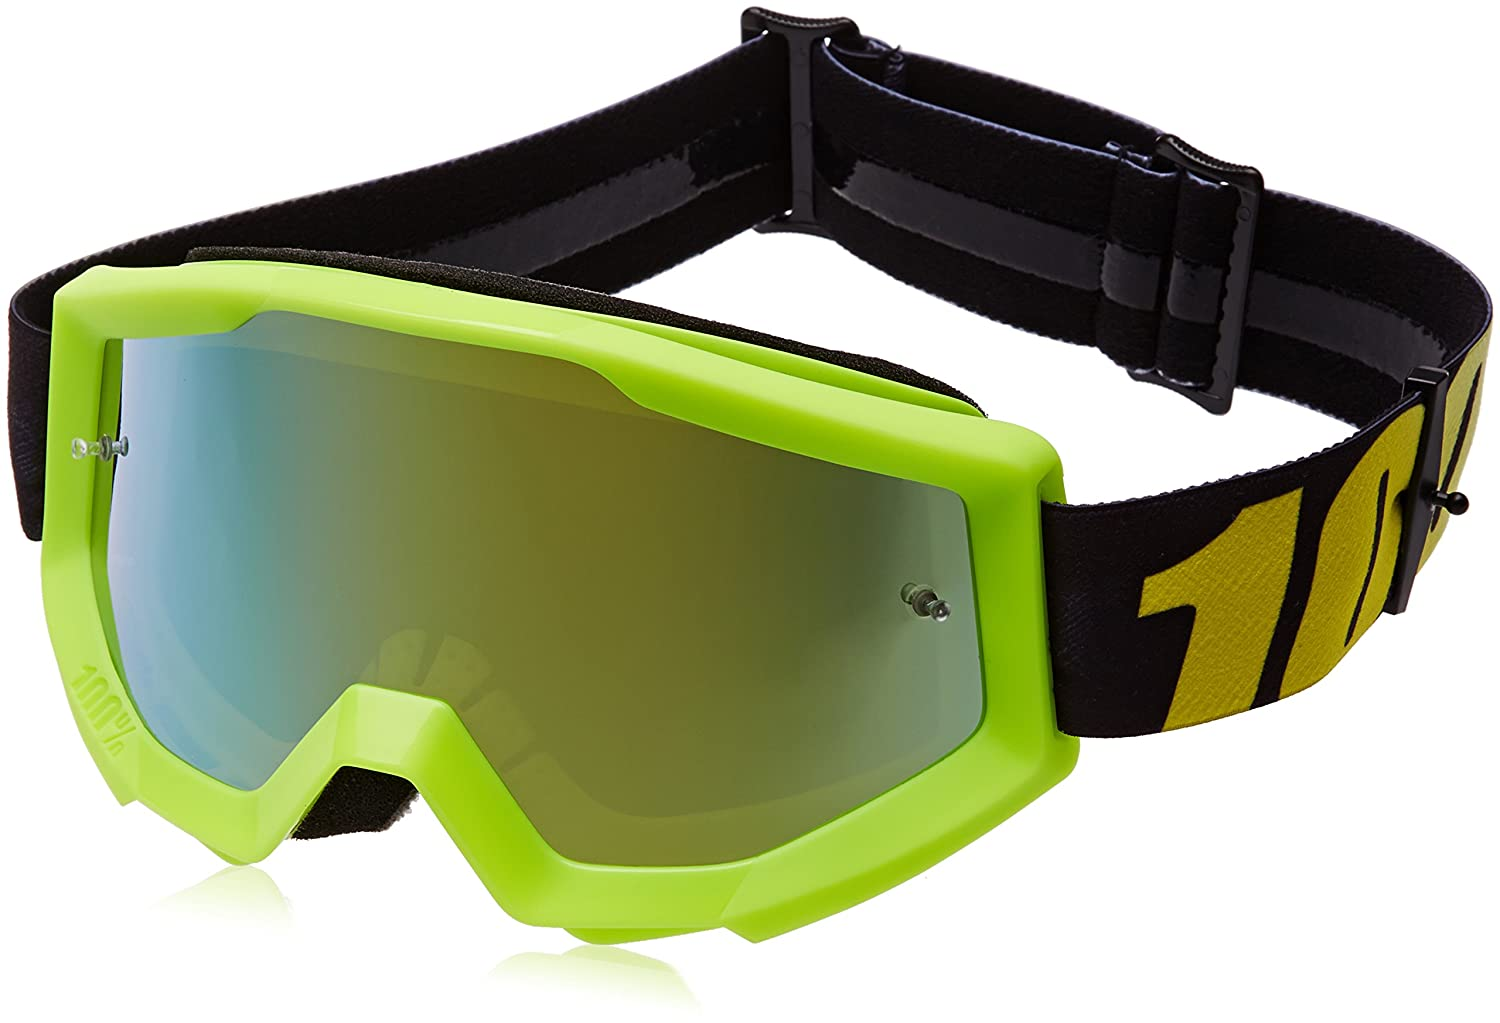 100% 50410-004-02 unisex-adult Goggle (Yellow, Mirror Gold, One Size) (STRATA MX STRATA N Yellow Mirror Lens Gold)